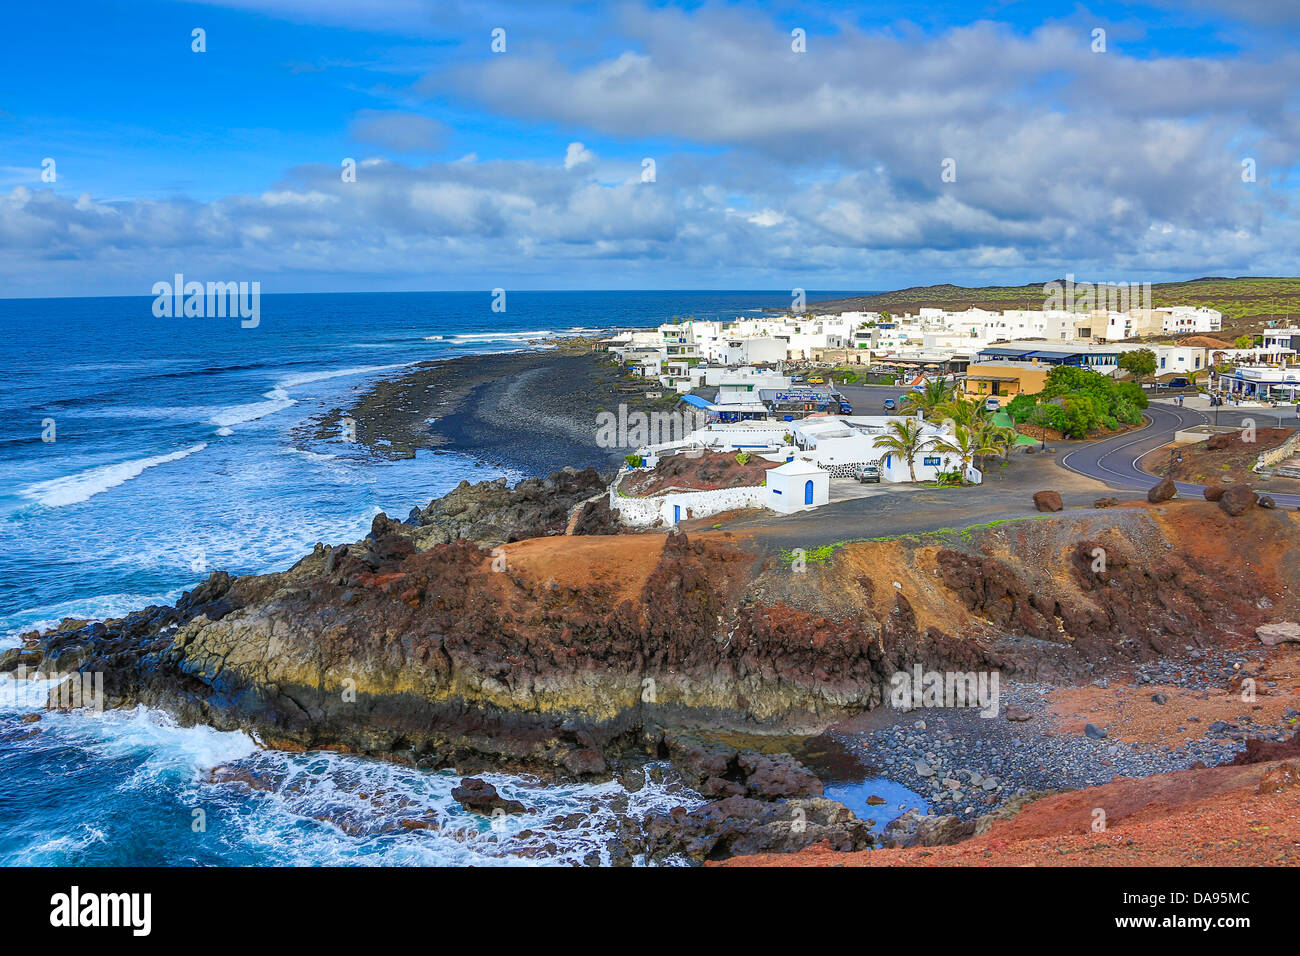 Spain, Europe, Canary Islands, Lanzarote, National Park, Volcano, beach, blue, coast, ecology, el golfo, erosion, - Stock Image